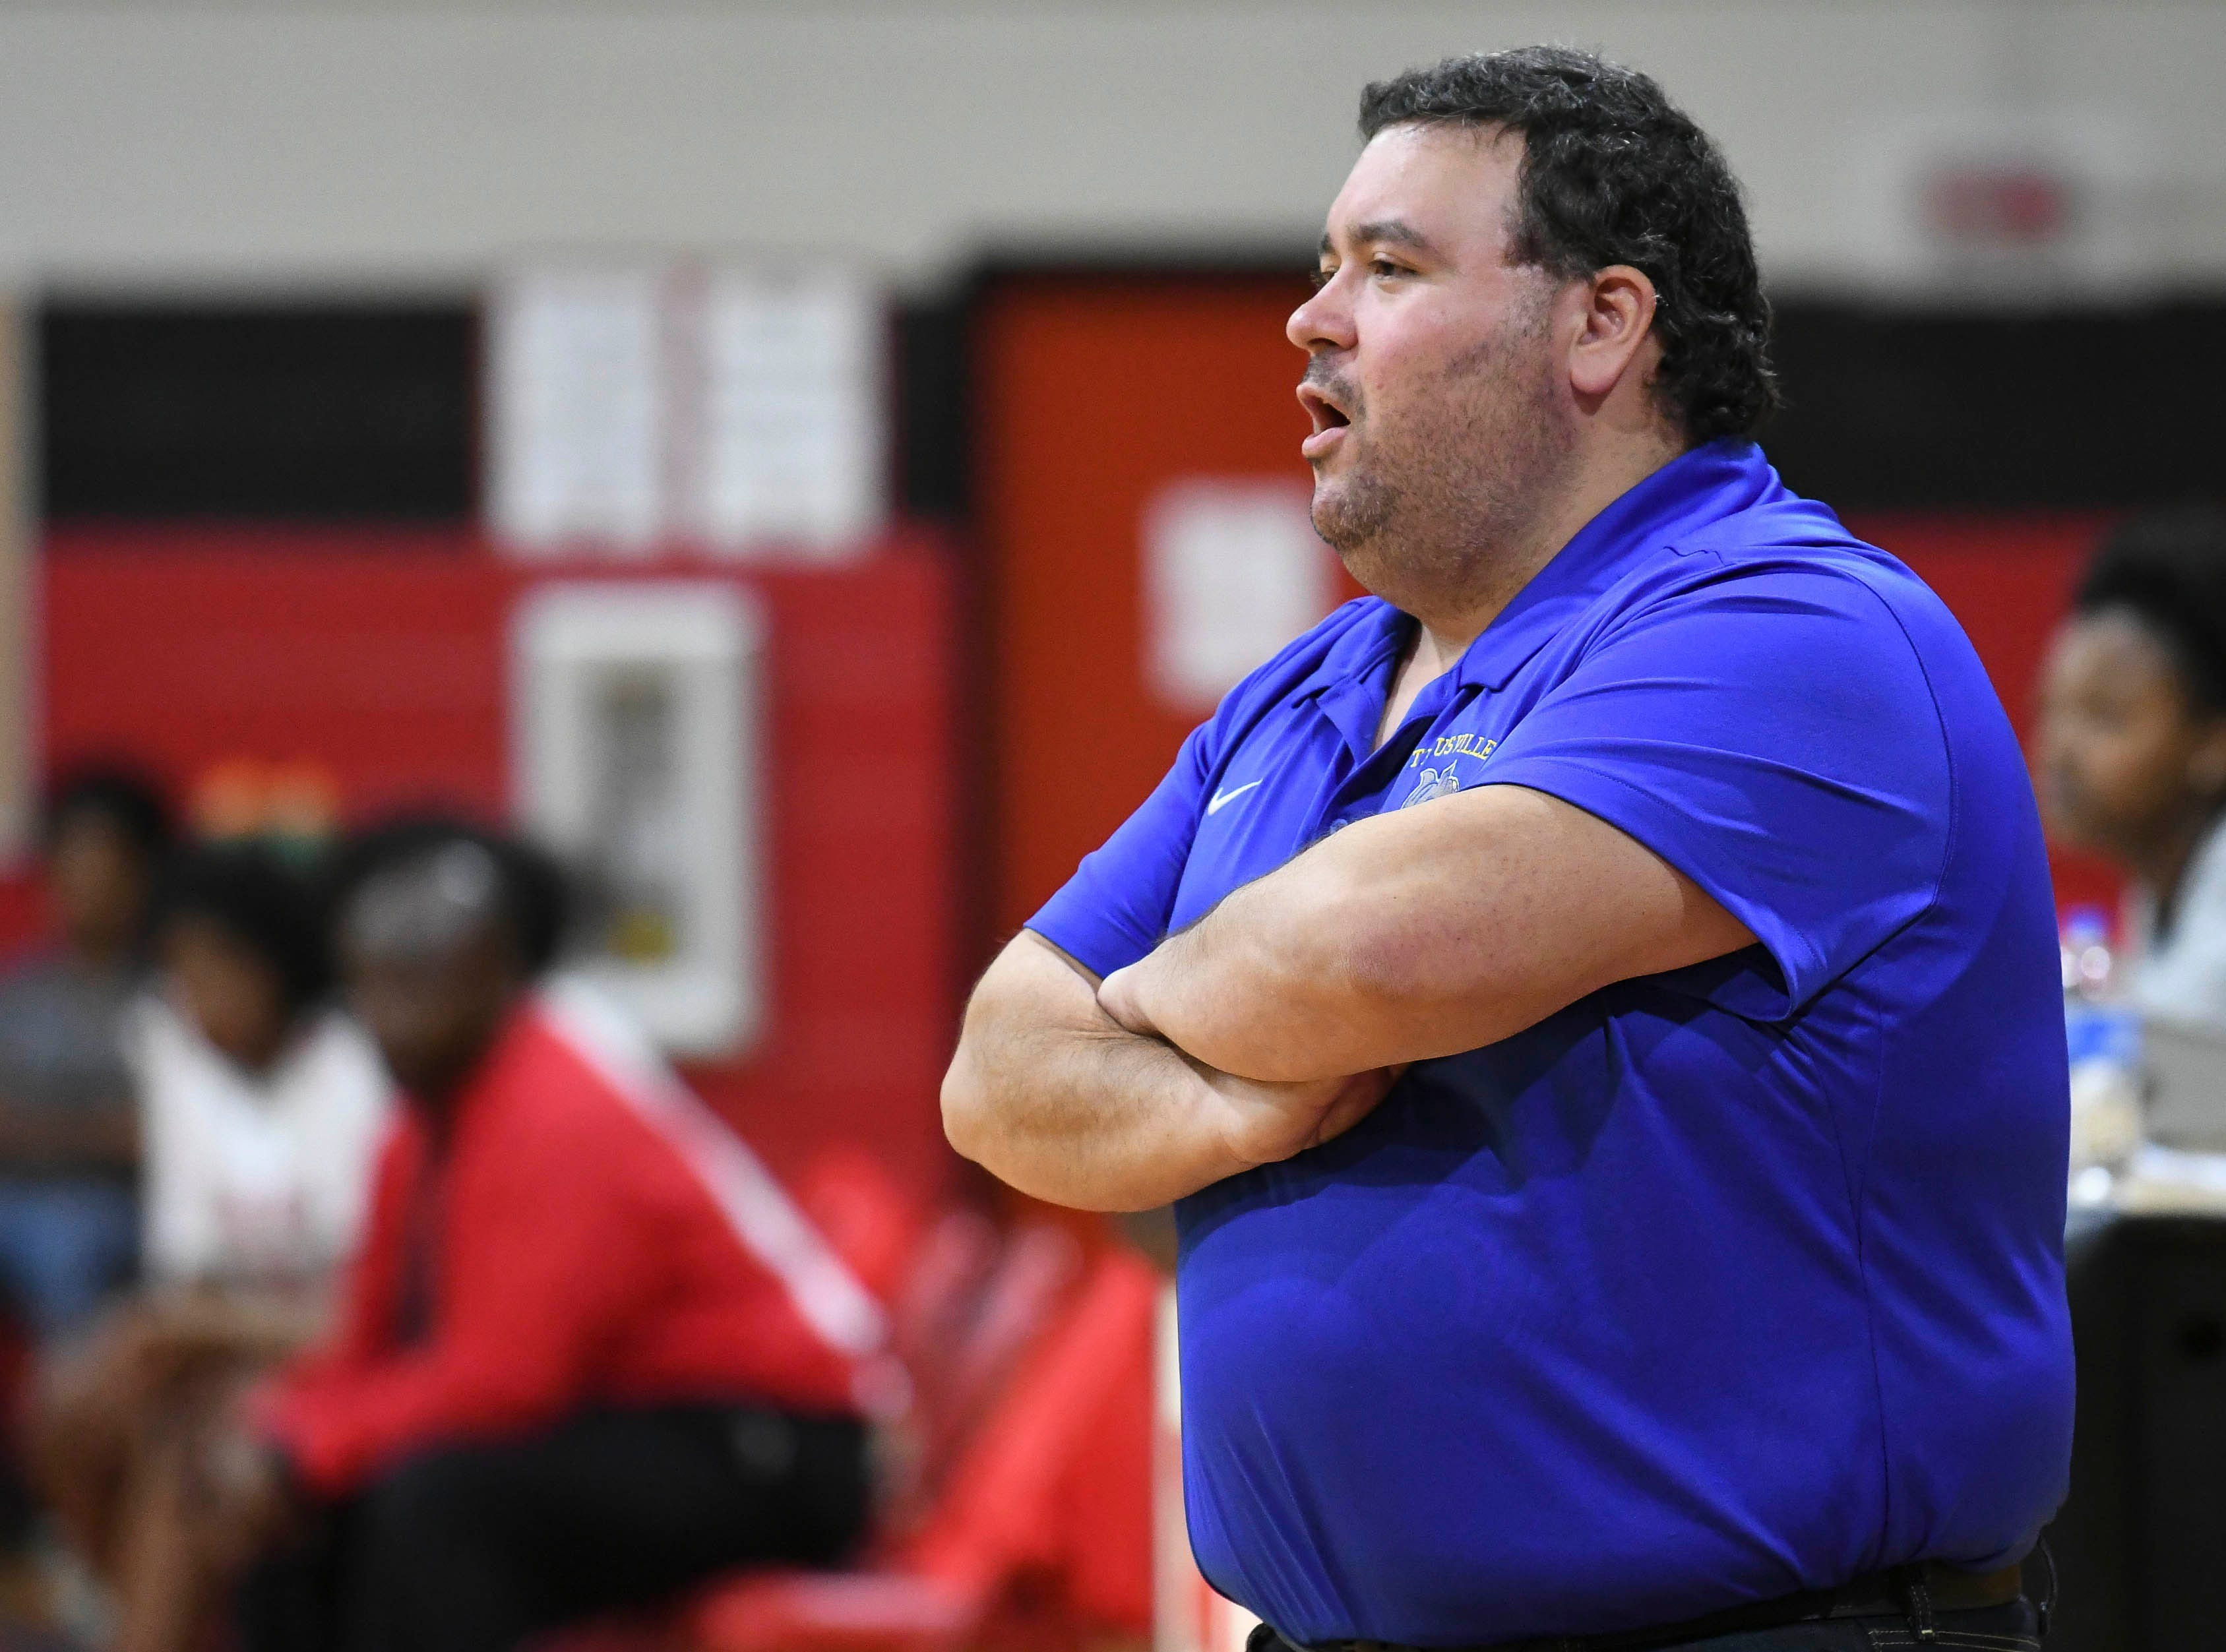 Titusville girls basketball head coach Rey Ortega prompts his players during Thursday's game against Palm Bay.